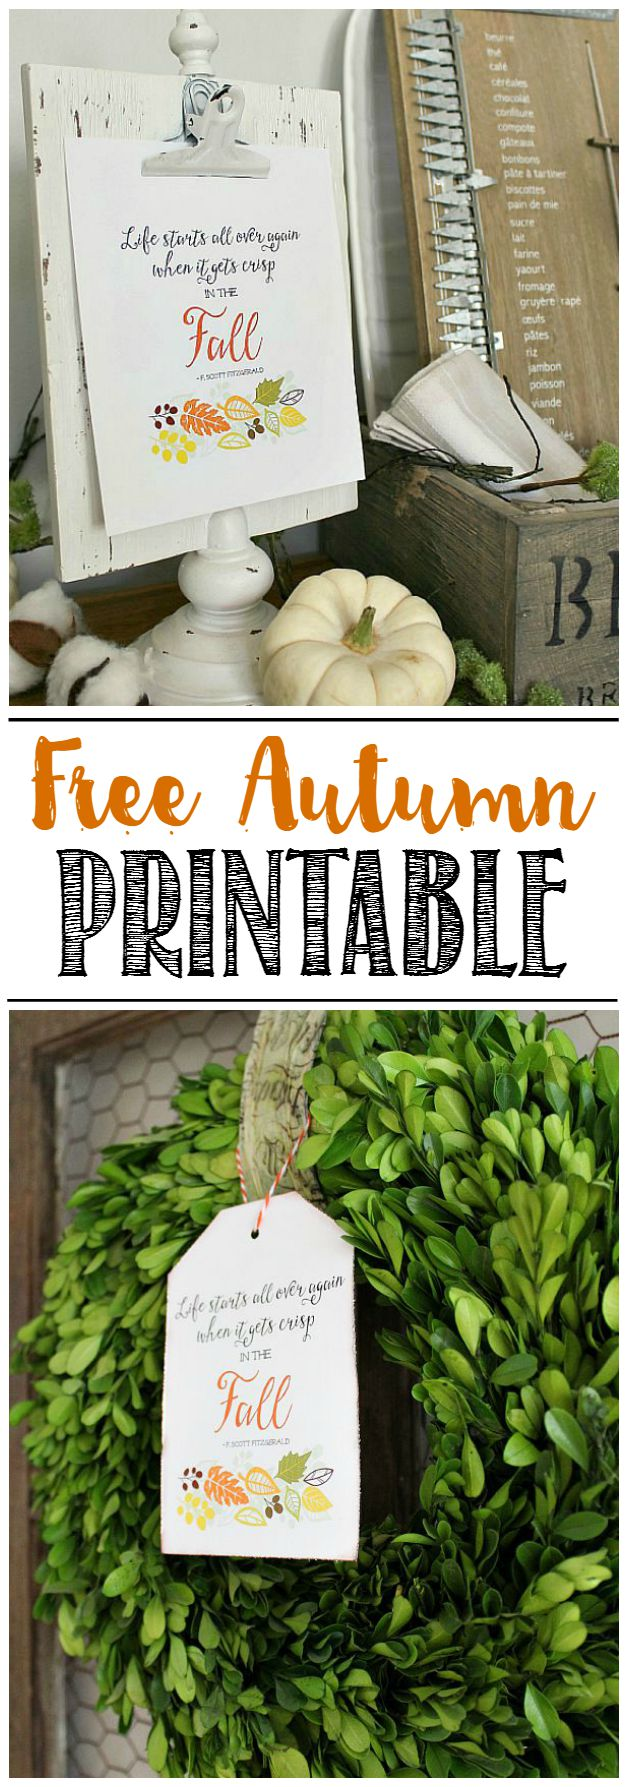 Beautiful free fall printable and along with pretty fall decor ideas.